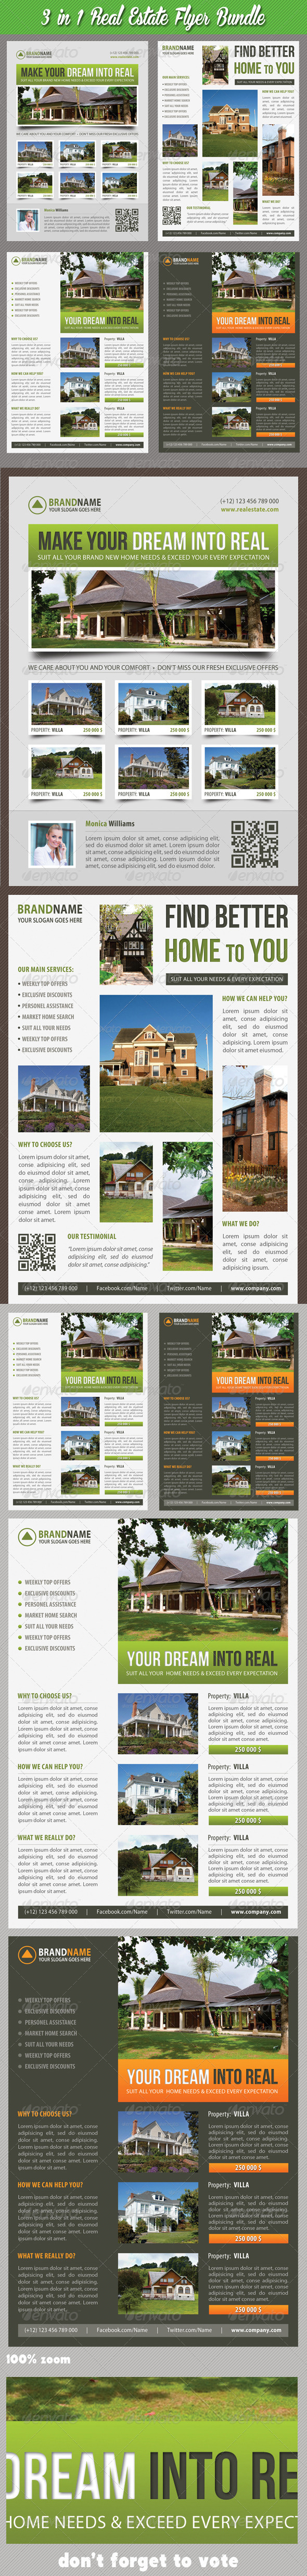 GraphicRiver 3 in 1 Real Estate Corporate Flyer Bundle 04 7489520